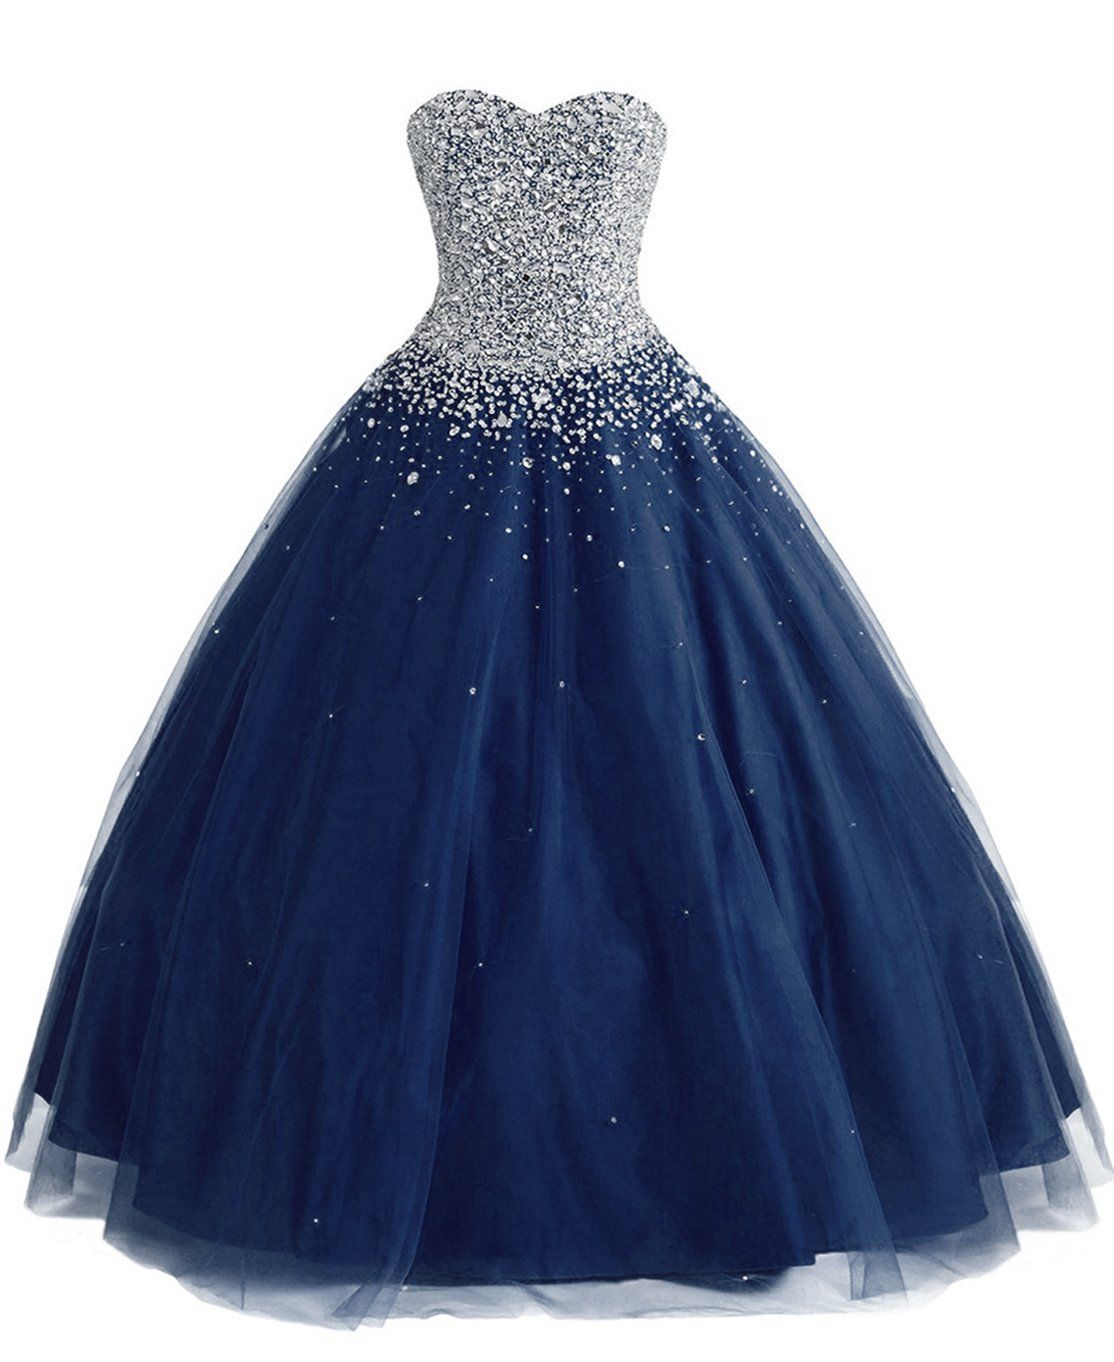 Merryjuly womenus tulle ball gown sweet prom quinceanera dresses